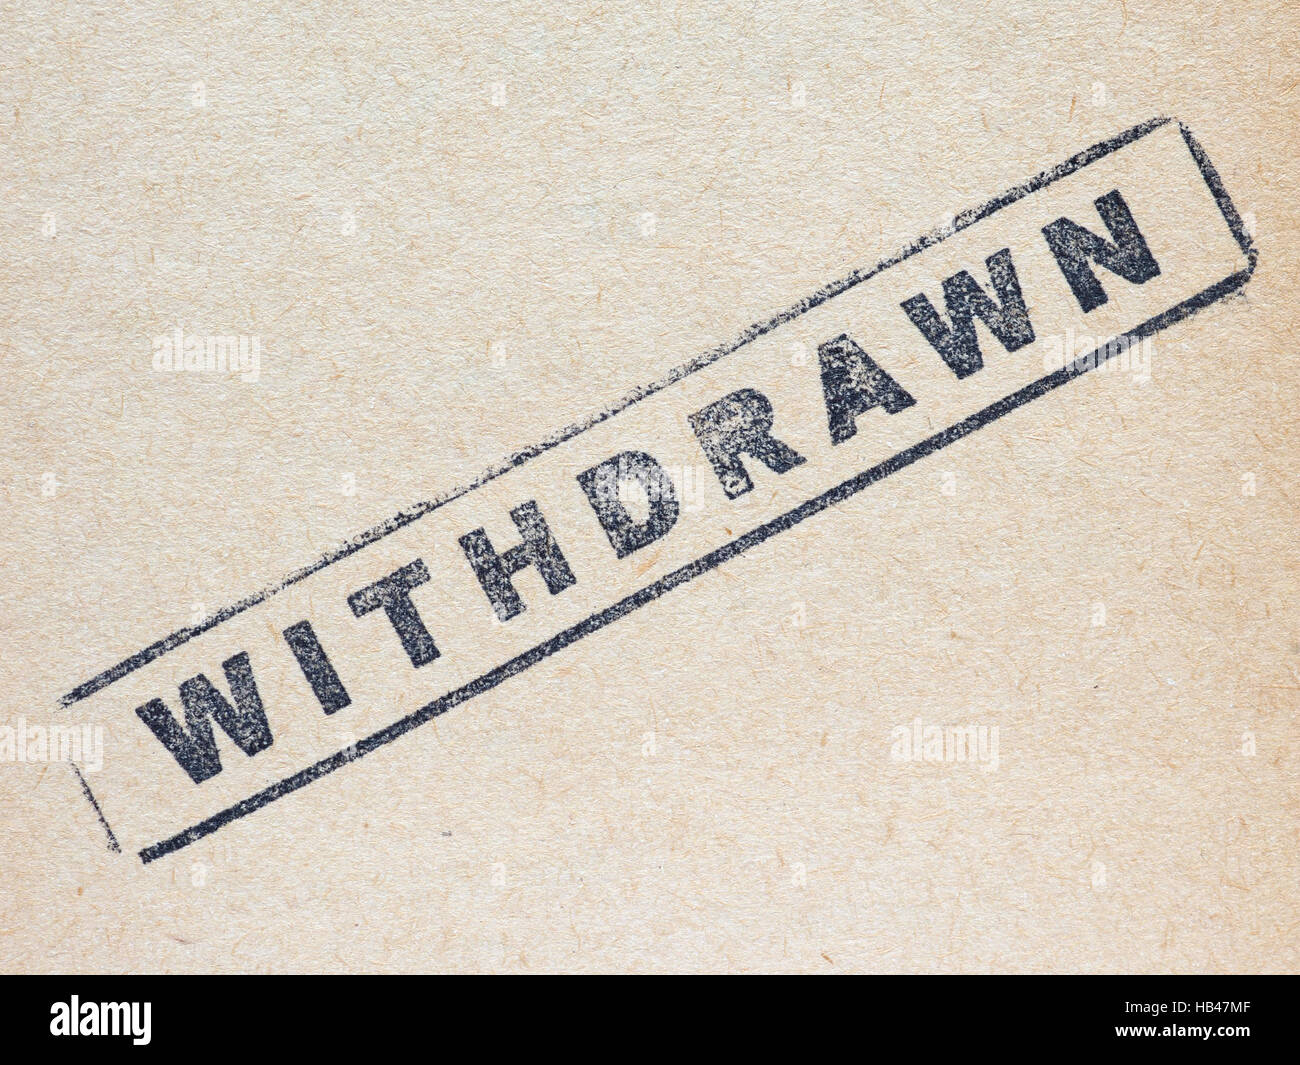 Withdrawn stamp on paper - Stock Image